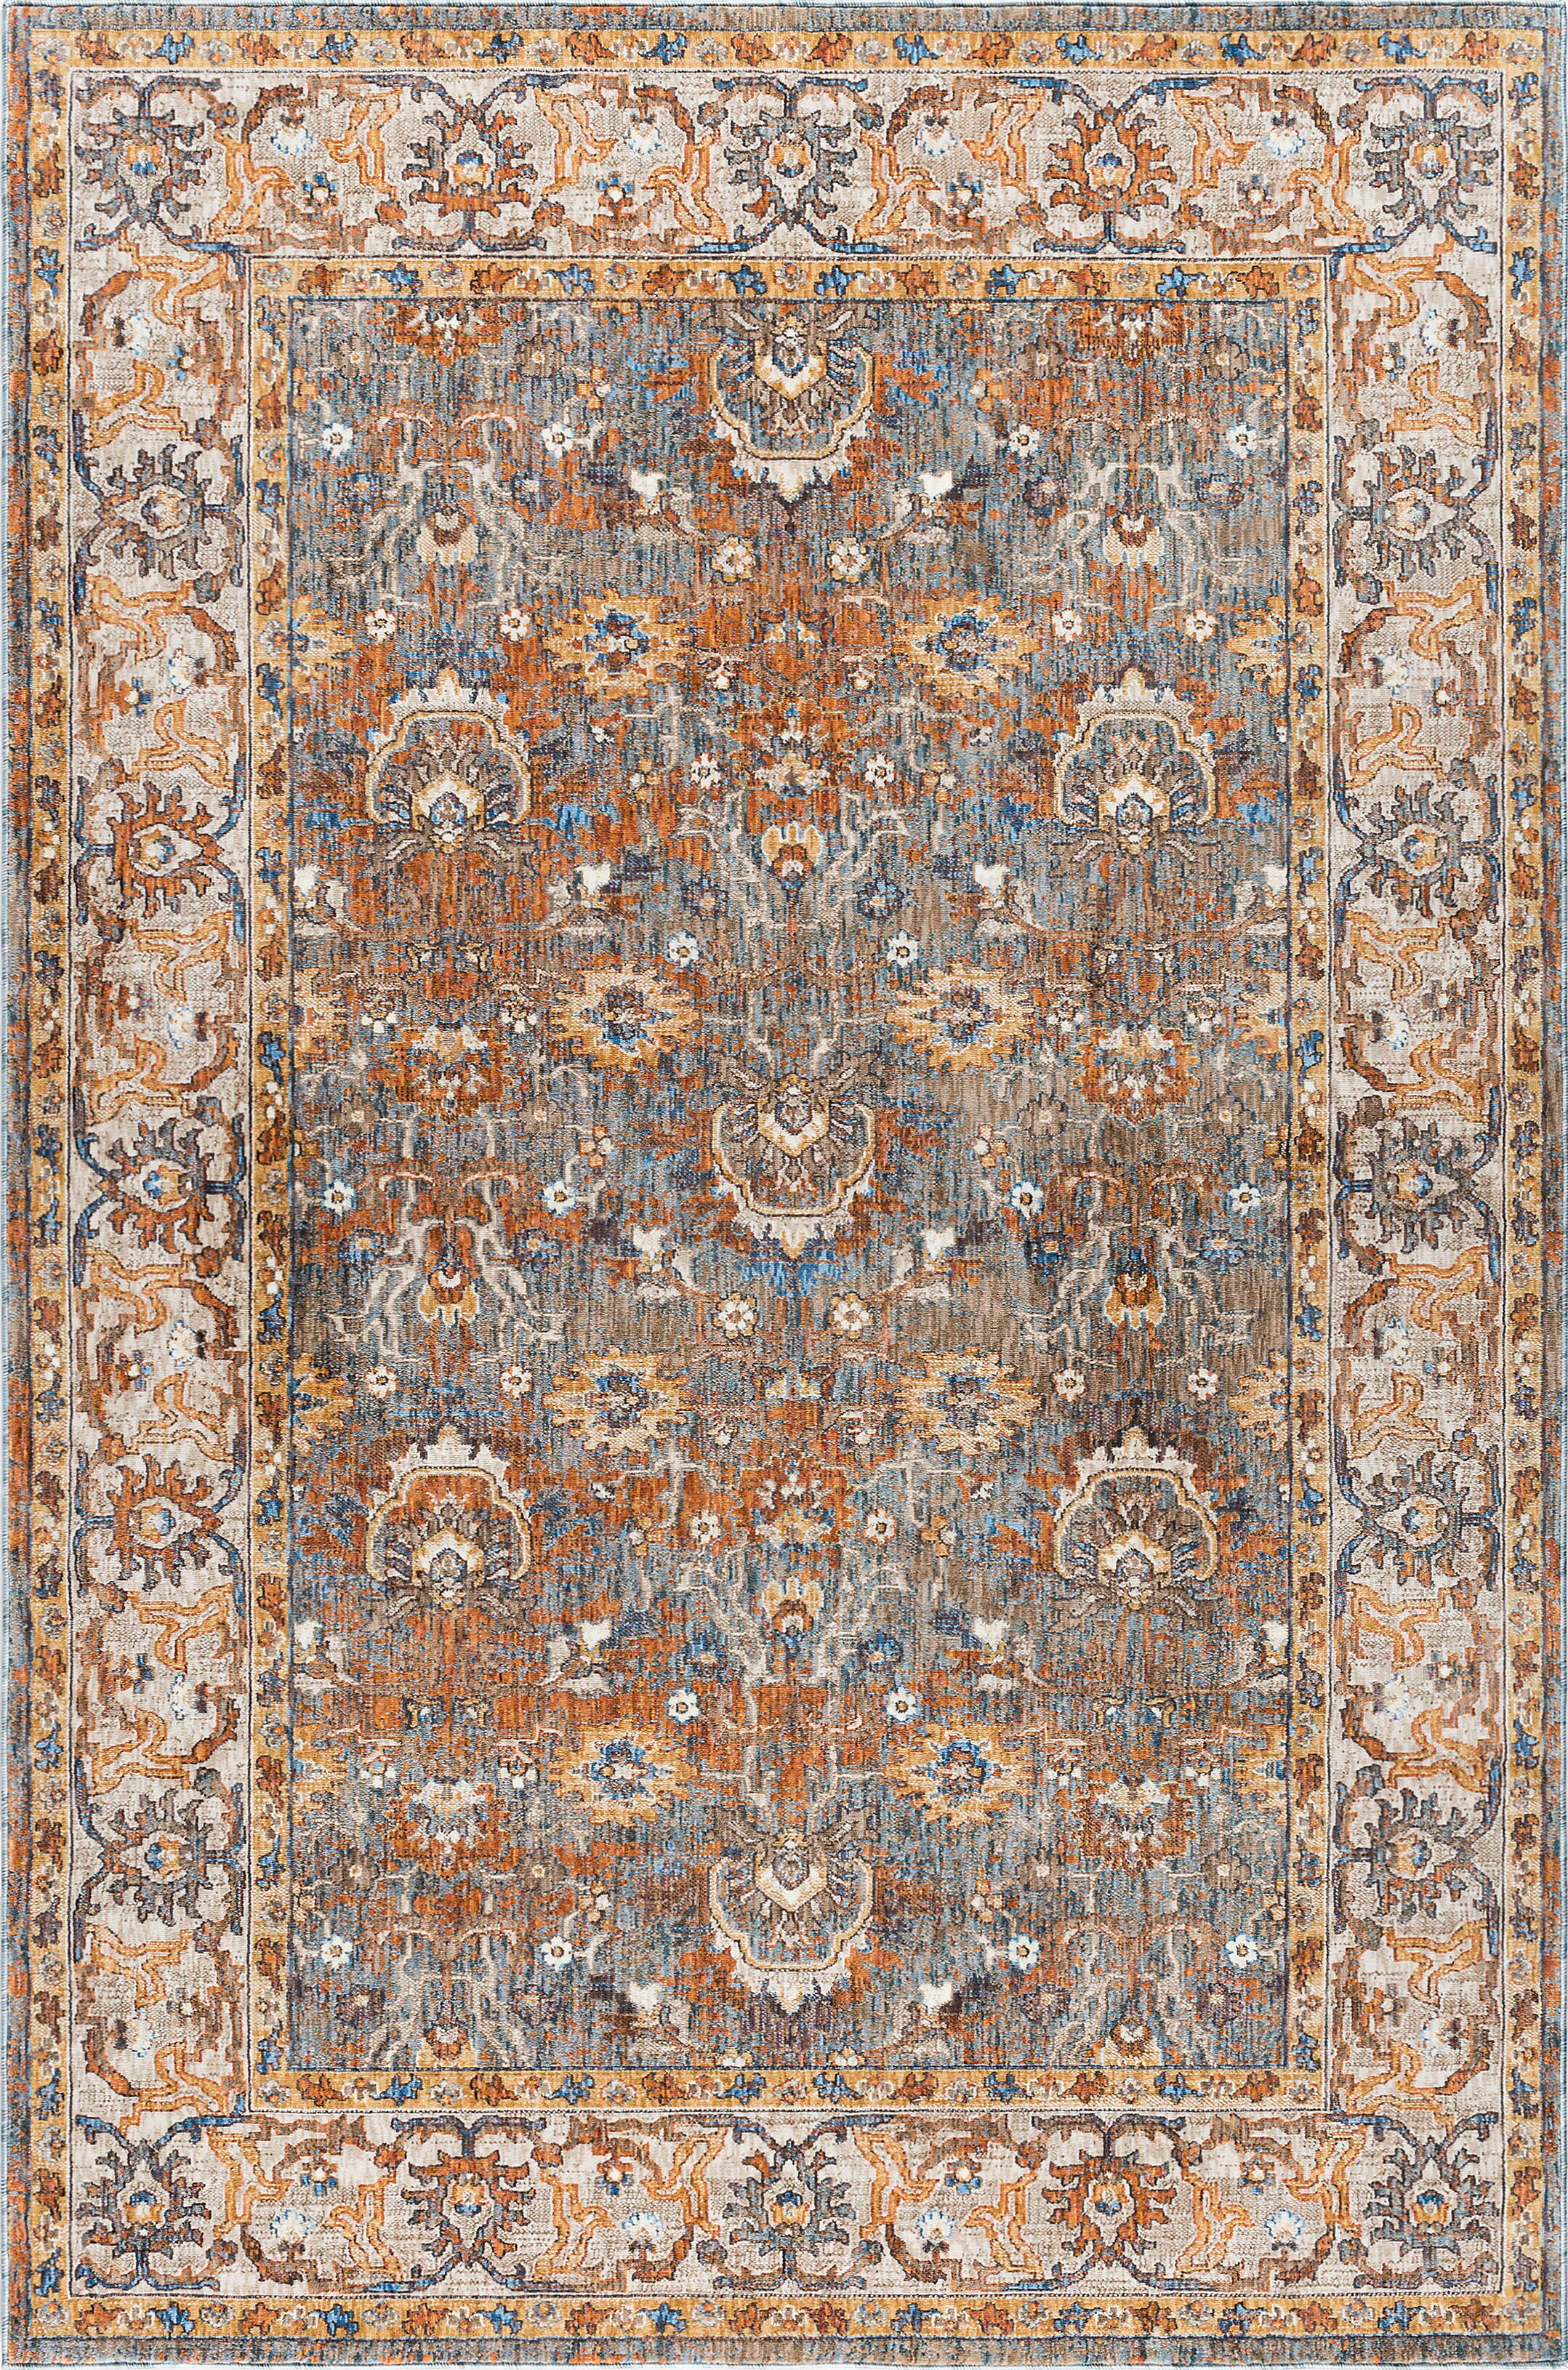 Matteson Traditional Orange Area Rug Rug Size: 5'3'' x 7'3''